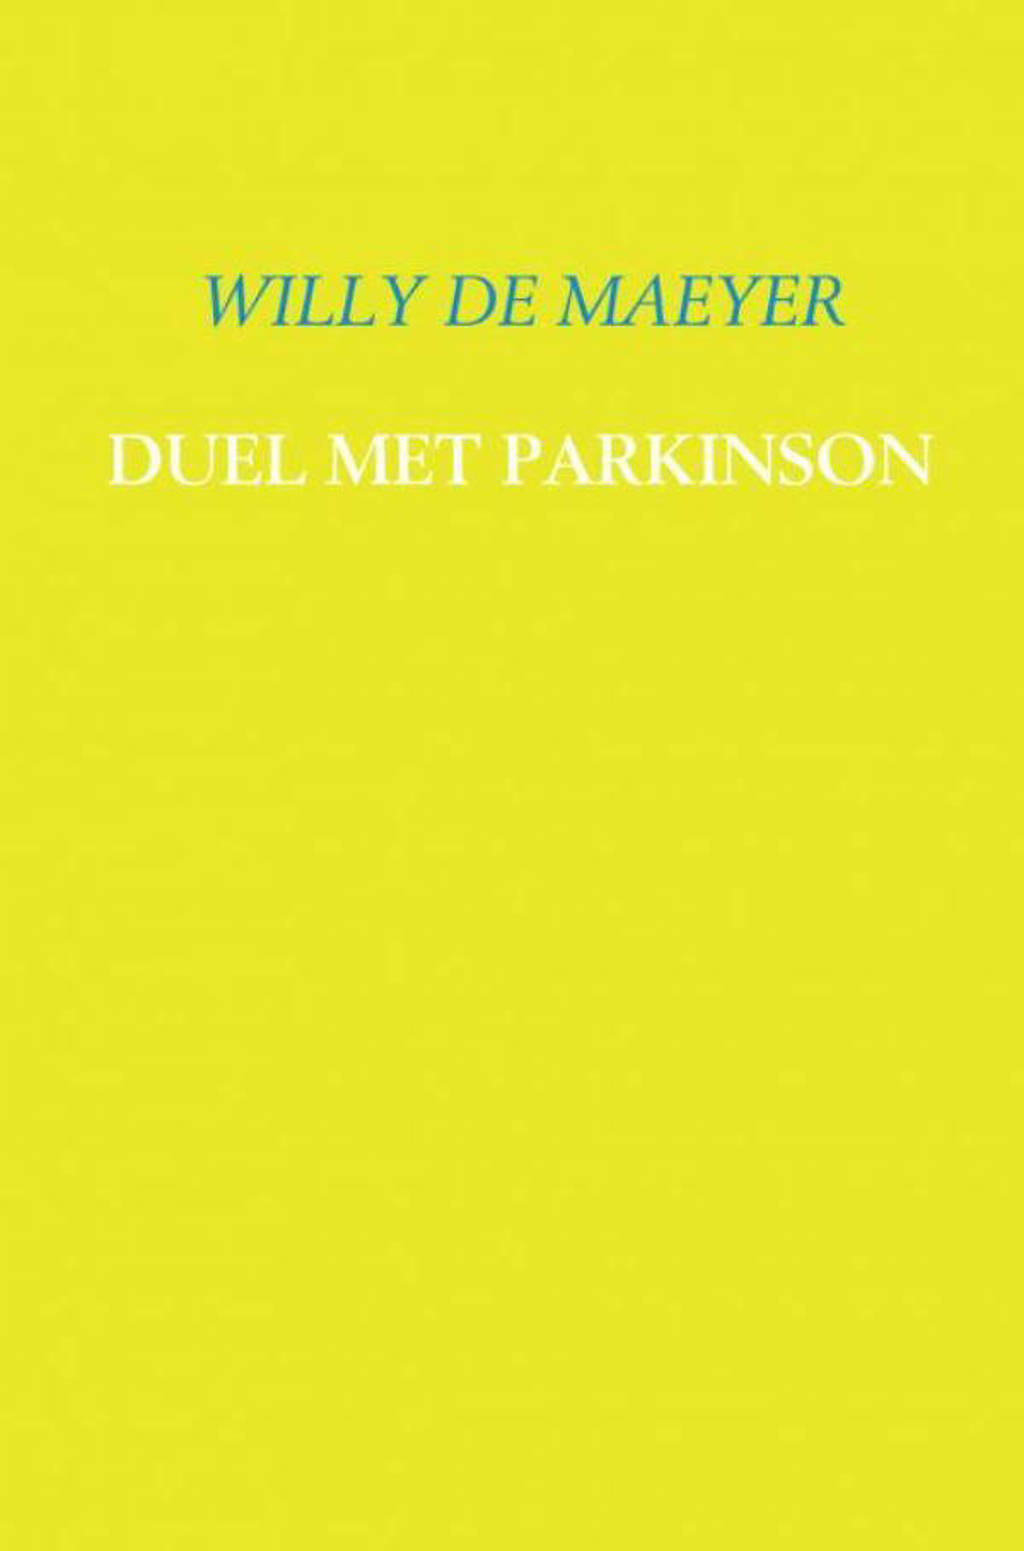 Duel met Parkinson - Willy de Maeyer